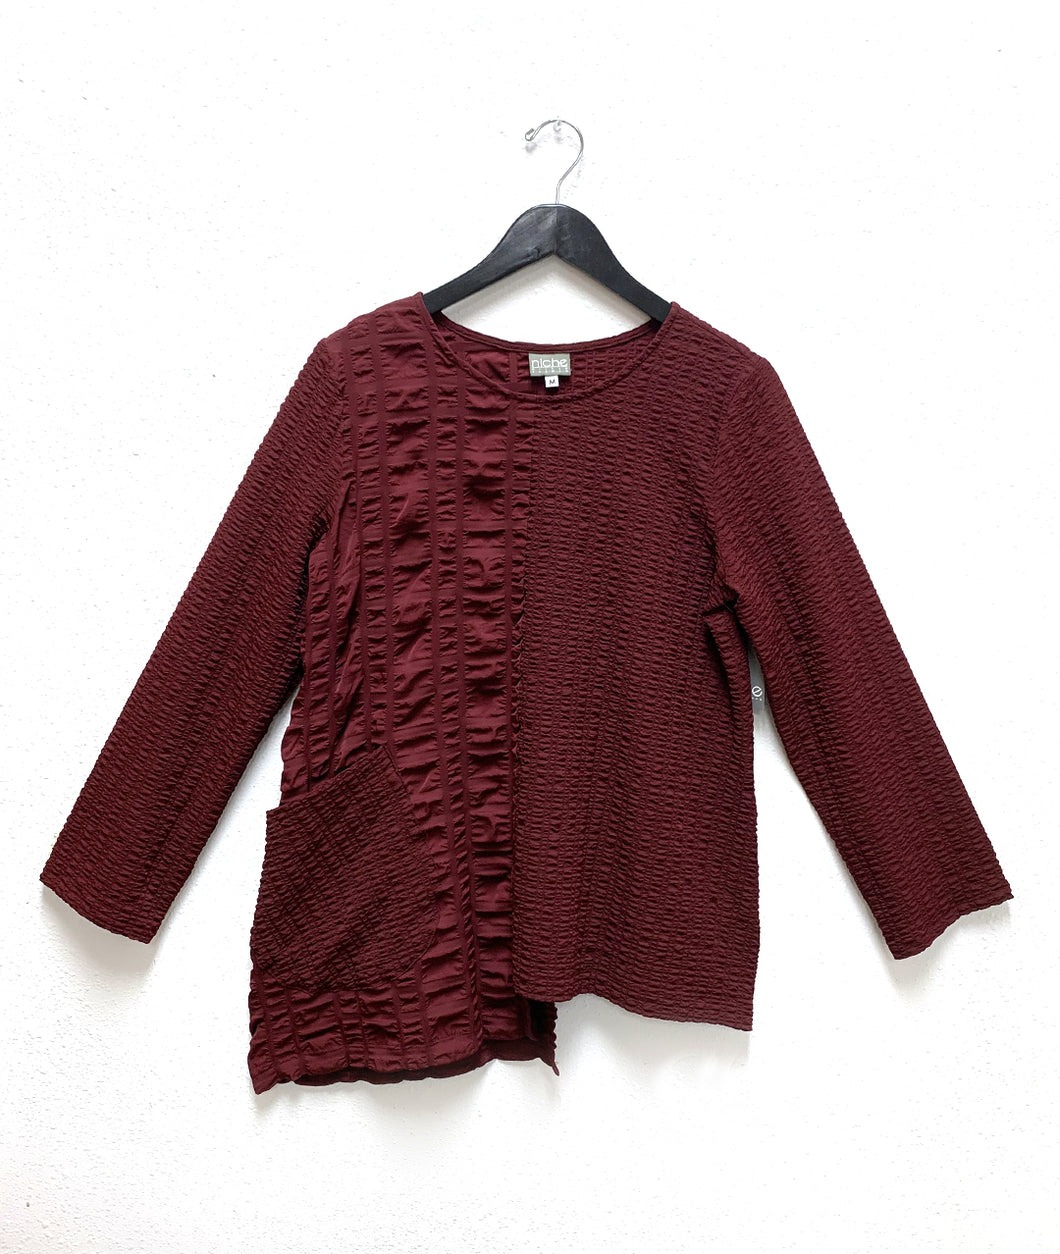 merlot color top with two different textures on either side. tunic has an uneven hem and a single square hip pocket.